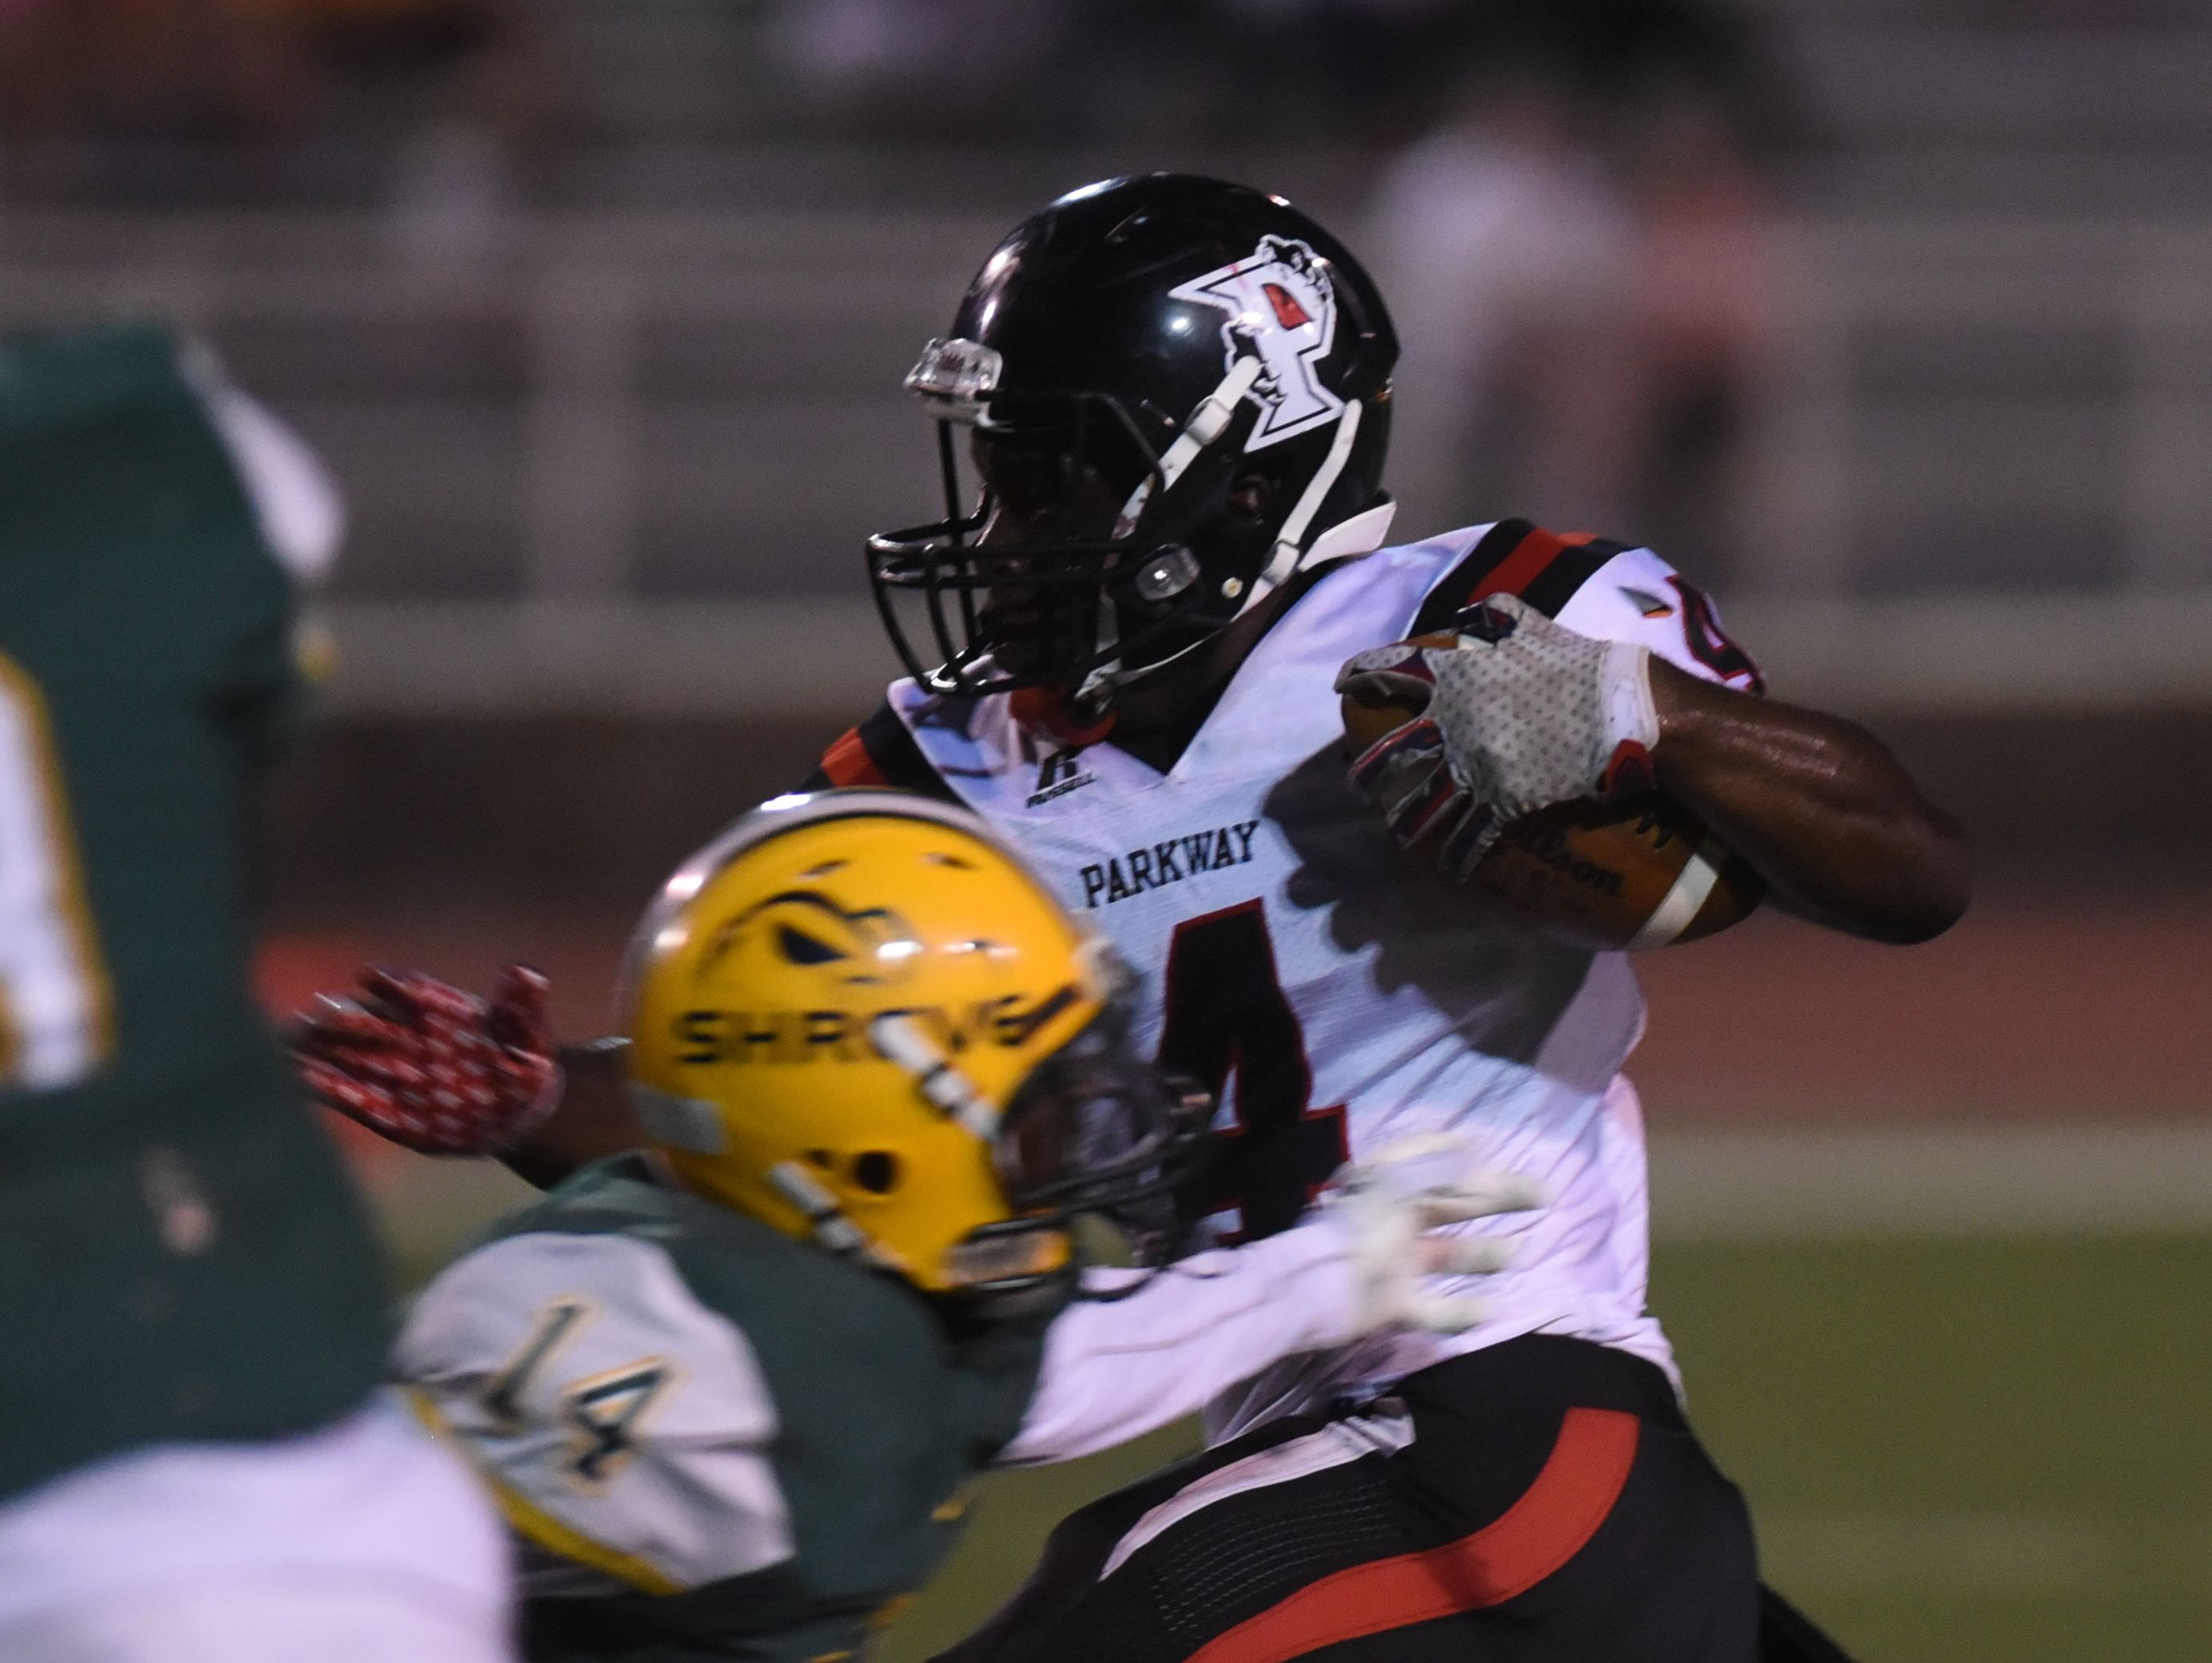 #4 EJ Williams cuts through the crowd for one of his two first half touchdowns against Capt. Shreve.